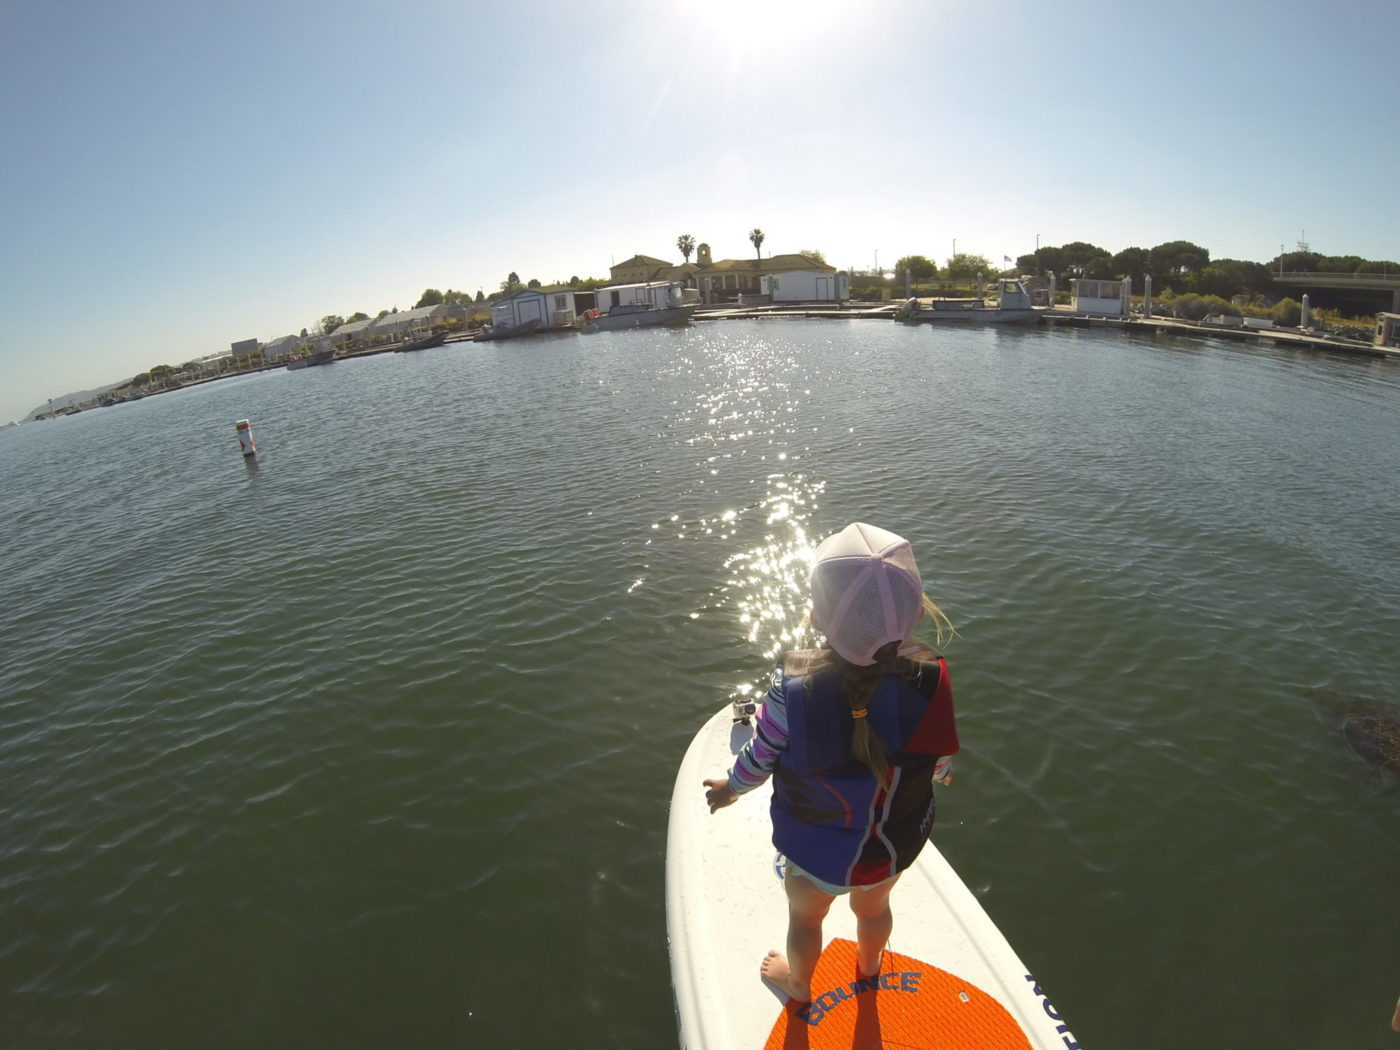 SUP with your Kids, sup rental san diego, sup rentals san diego, stand up paddle board rental san diego, stand up paddle board san diego, paddle board rental san diego, san diego sup, stand up paddling san diego, san diego paddle board rentals, sup yoga san diego, paddle board san diego, san diego paddle board, stand up paddle boarding san diego, sup san diego, paddle boarding in san diego, paddleboards for sale san diego, paddle board yoga san diego, san diego paddle boarding, paddle board lessons san diego, paddle boarding lessons san diego, liberty station rentals, kayak rentals san diego, paddle boarding coronado, kayak rentals in san diego, kayak rentals mission bay, san diego kayak rentals, sup deliveries, sup delivery, mission bay paddleboard delivery, deliver kayaks, san diego sup events, sup team building events, corporate events san diego